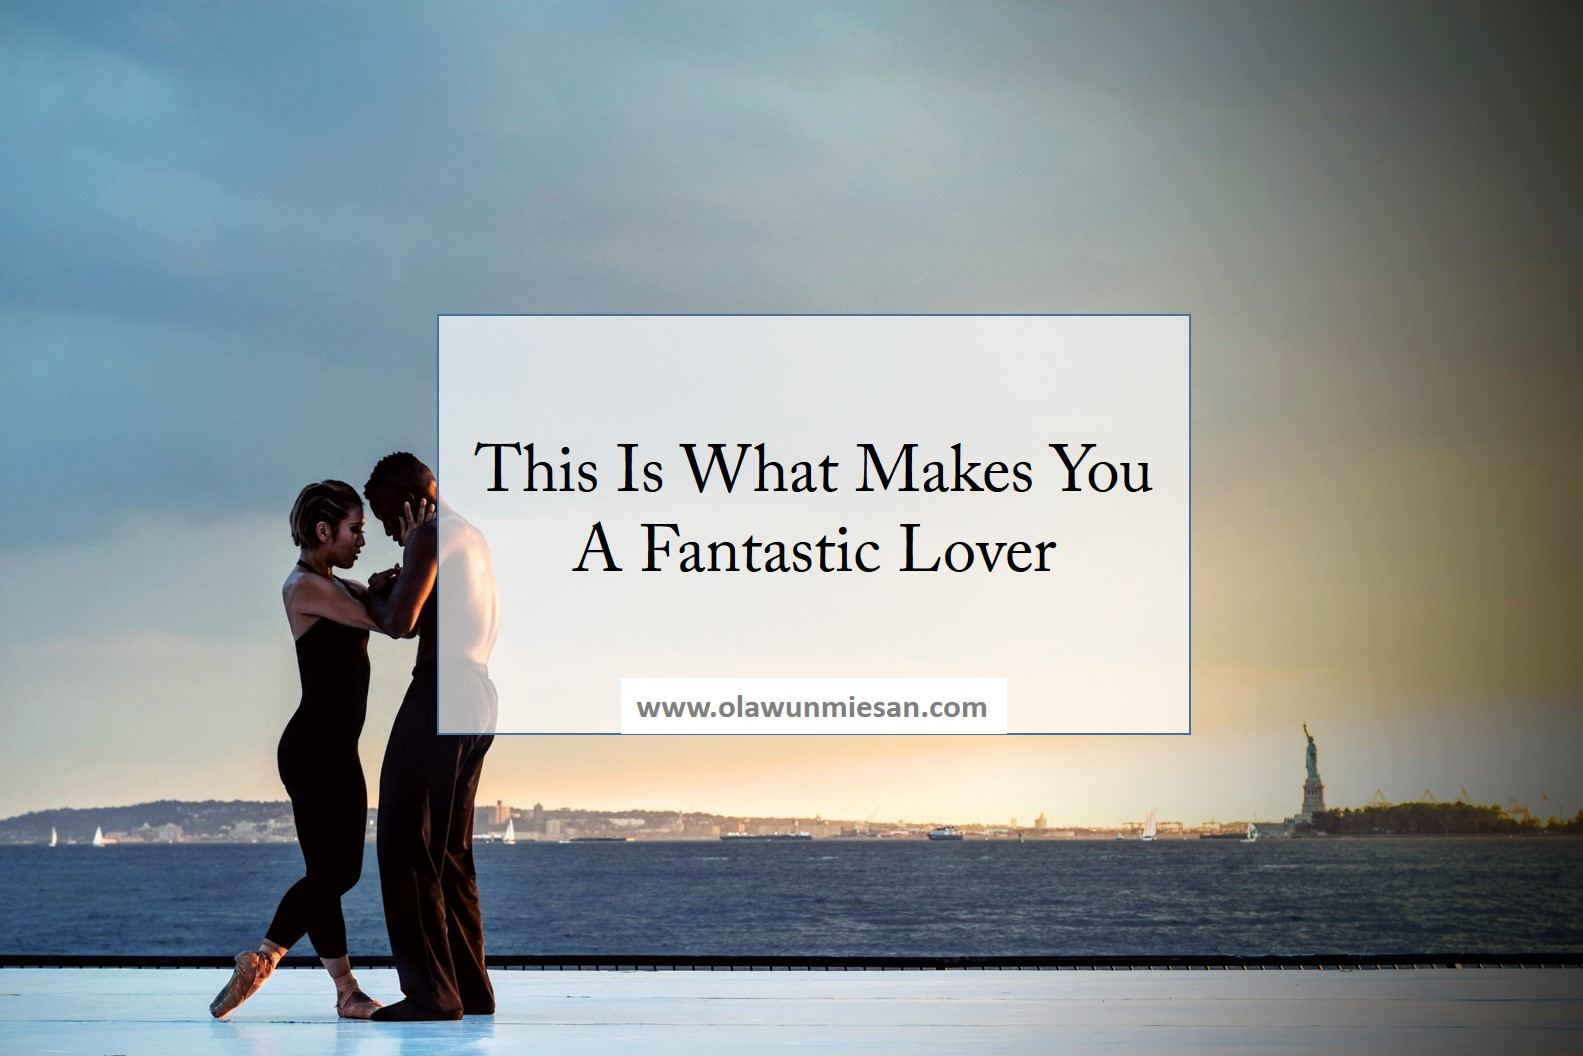 This Is What Makes You A Fantastic Lover